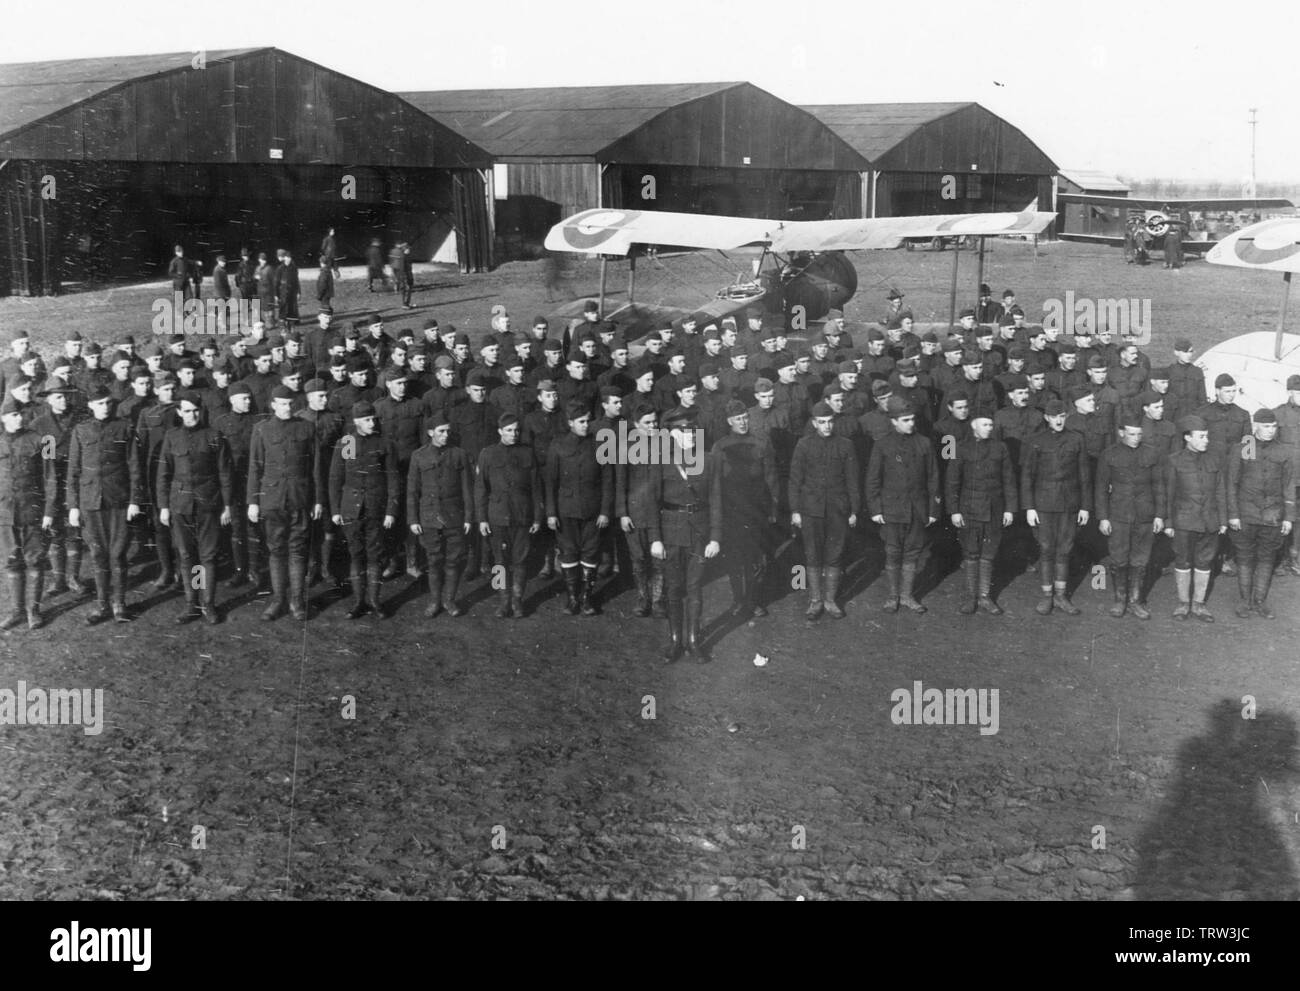 'English: 2d AIC - 35th Aero Squadron; 1918; Air Service, United States Army photograph, Gorrell's History of the American Expeditionary Forces Air Se - Stock Image